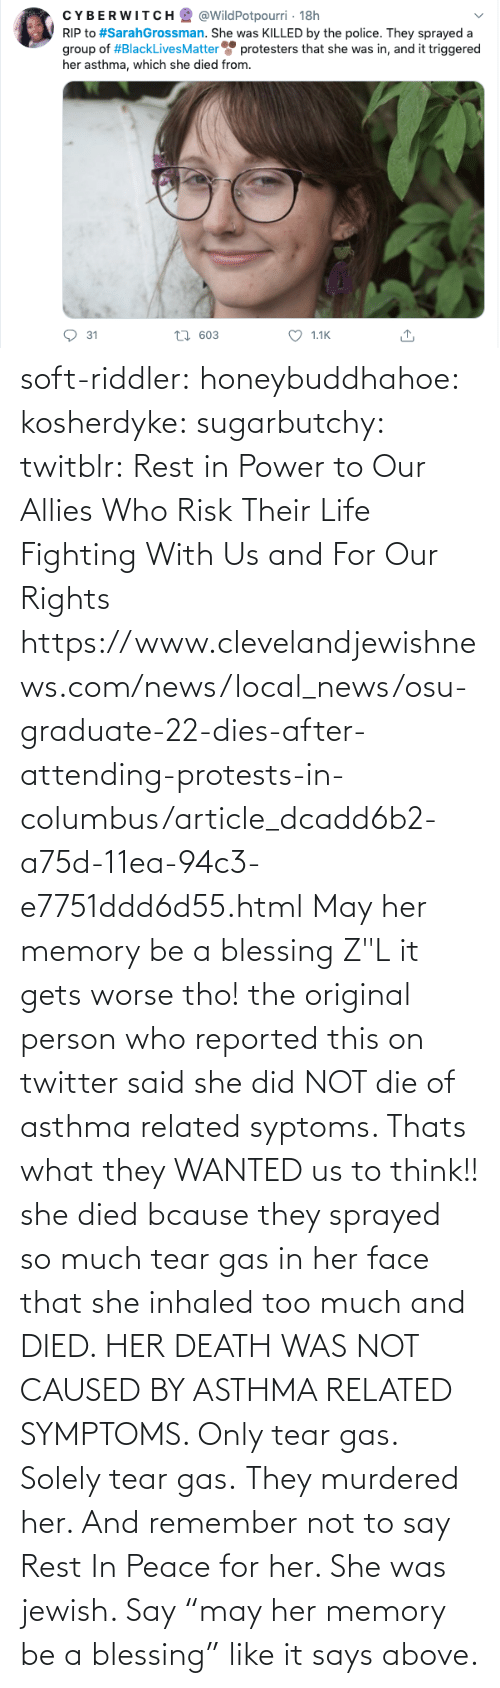 "risk: soft-riddler:  honeybuddhahoe:  kosherdyke:  sugarbutchy:  twitblr: Rest in Power to Our Allies Who Risk Their Life Fighting With Us and For Our Rights https://www.clevelandjewishnews.com/news/local_news/osu-graduate-22-dies-after-attending-protests-in-columbus/article_dcadd6b2-a75d-11ea-94c3-e7751ddd6d55.html    May her memory be a blessing Z""L  it gets worse tho! the original person who reported this on twitter said she did NOT die of asthma related syptoms. Thats what they WANTED us to think!! she died bcause they sprayed so much tear gas in her face that she inhaled too much and DIED. HER DEATH WAS NOT CAUSED BY ASTHMA RELATED SYMPTOMS. Only tear gas. Solely tear gas. They murdered her.     And remember not to say Rest In Peace for her. She was jewish. Say ""may her memory be a blessing"" like it says above."